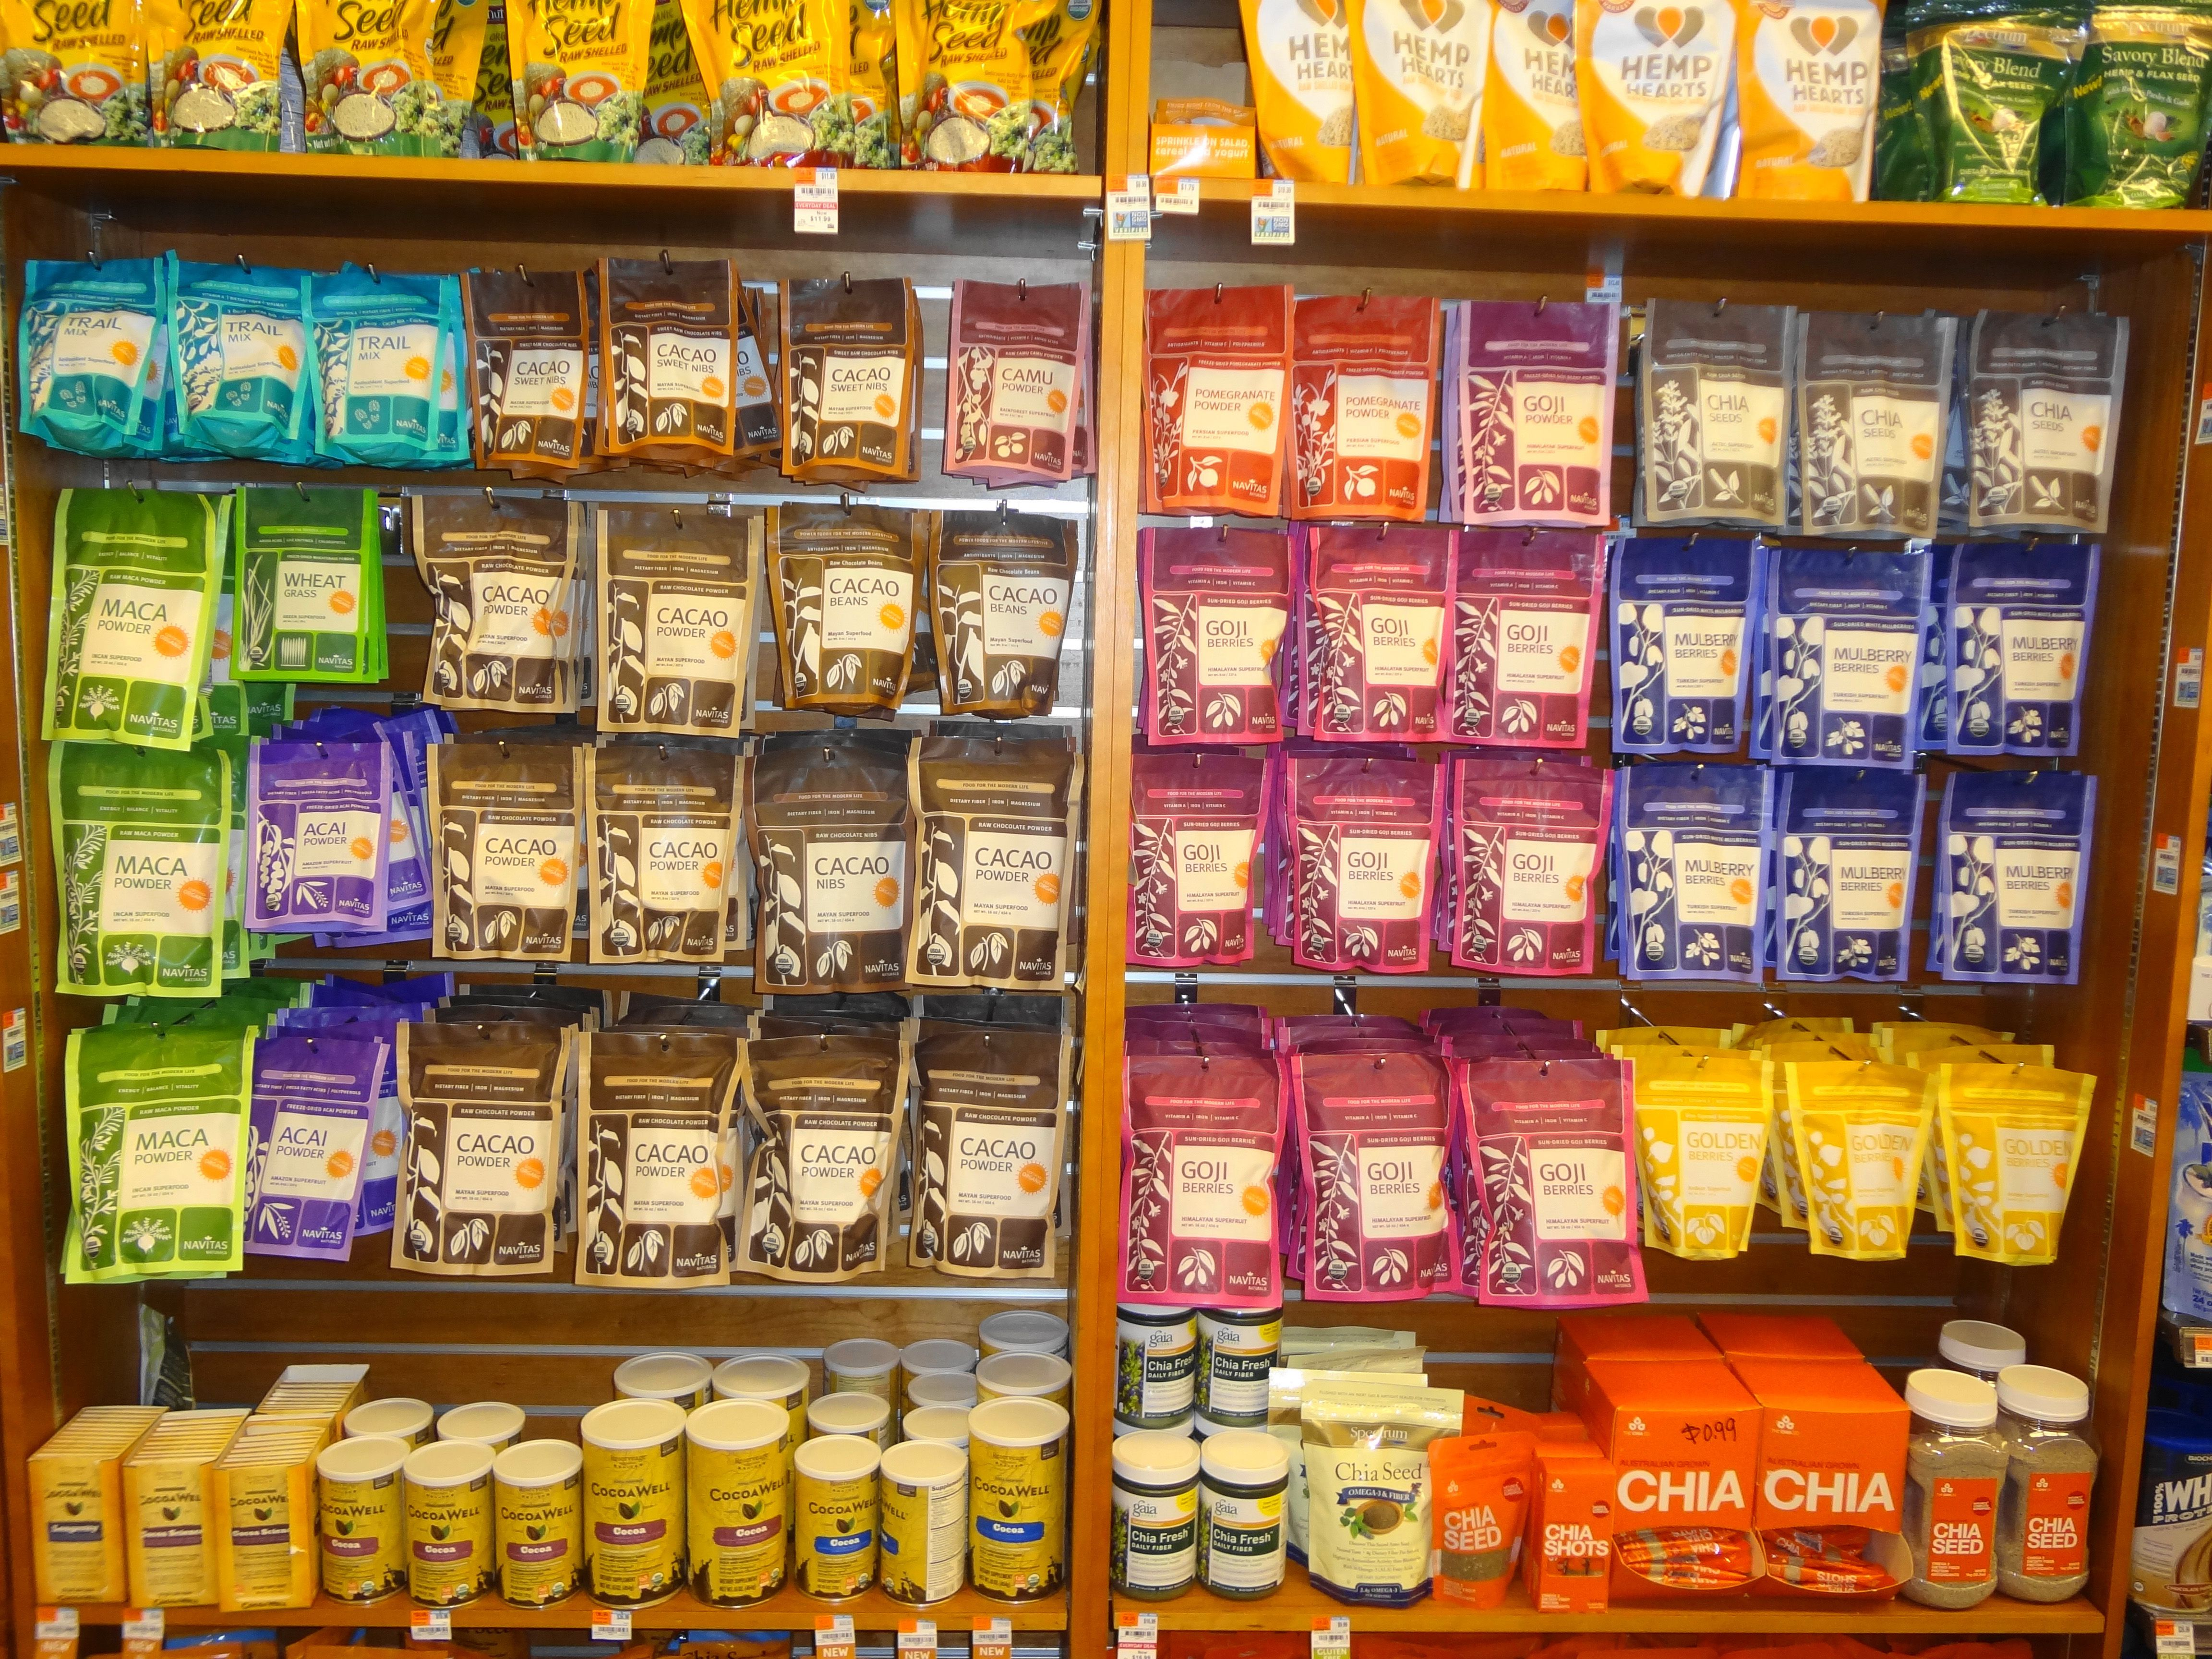 The shelves are stocked with superfoods at whole foods